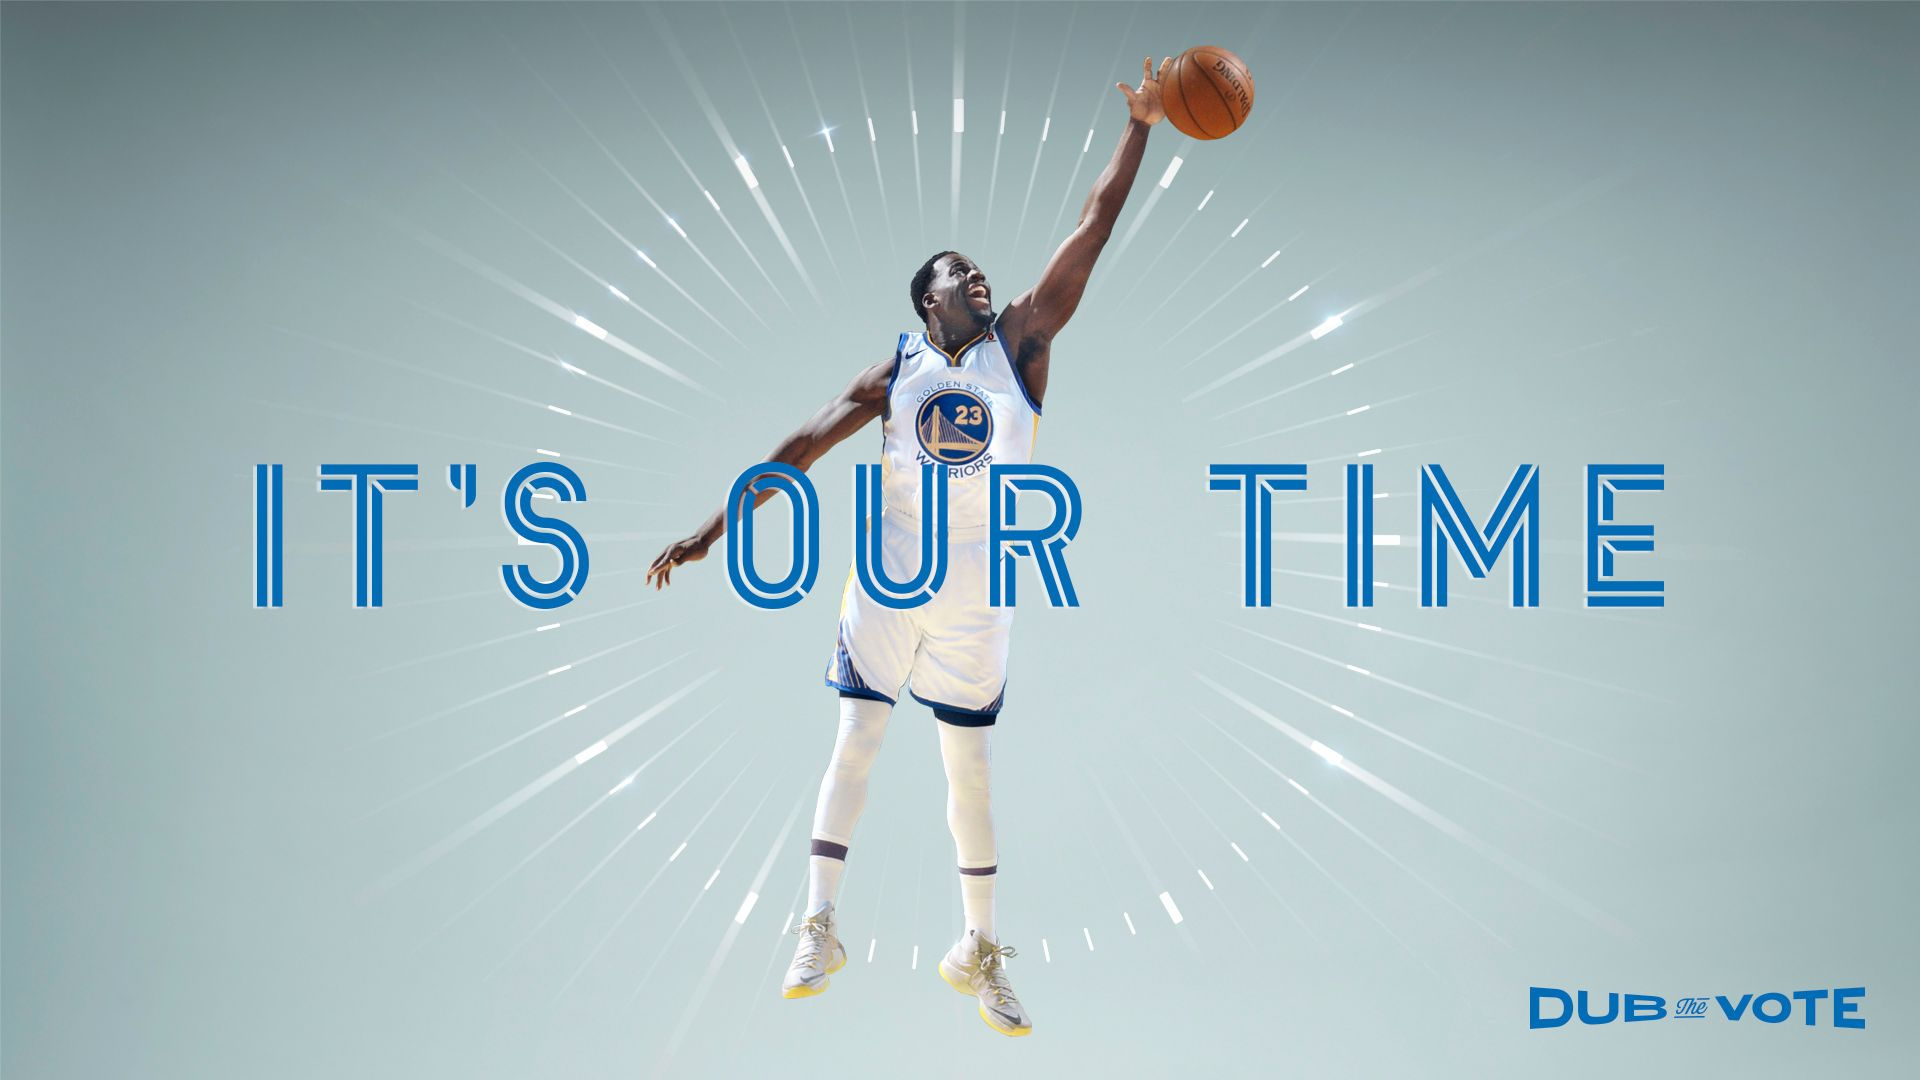 �� 1 RT = 1 Vote ��  Draymond Green #NBAVote https://t.co/geDxArelAT